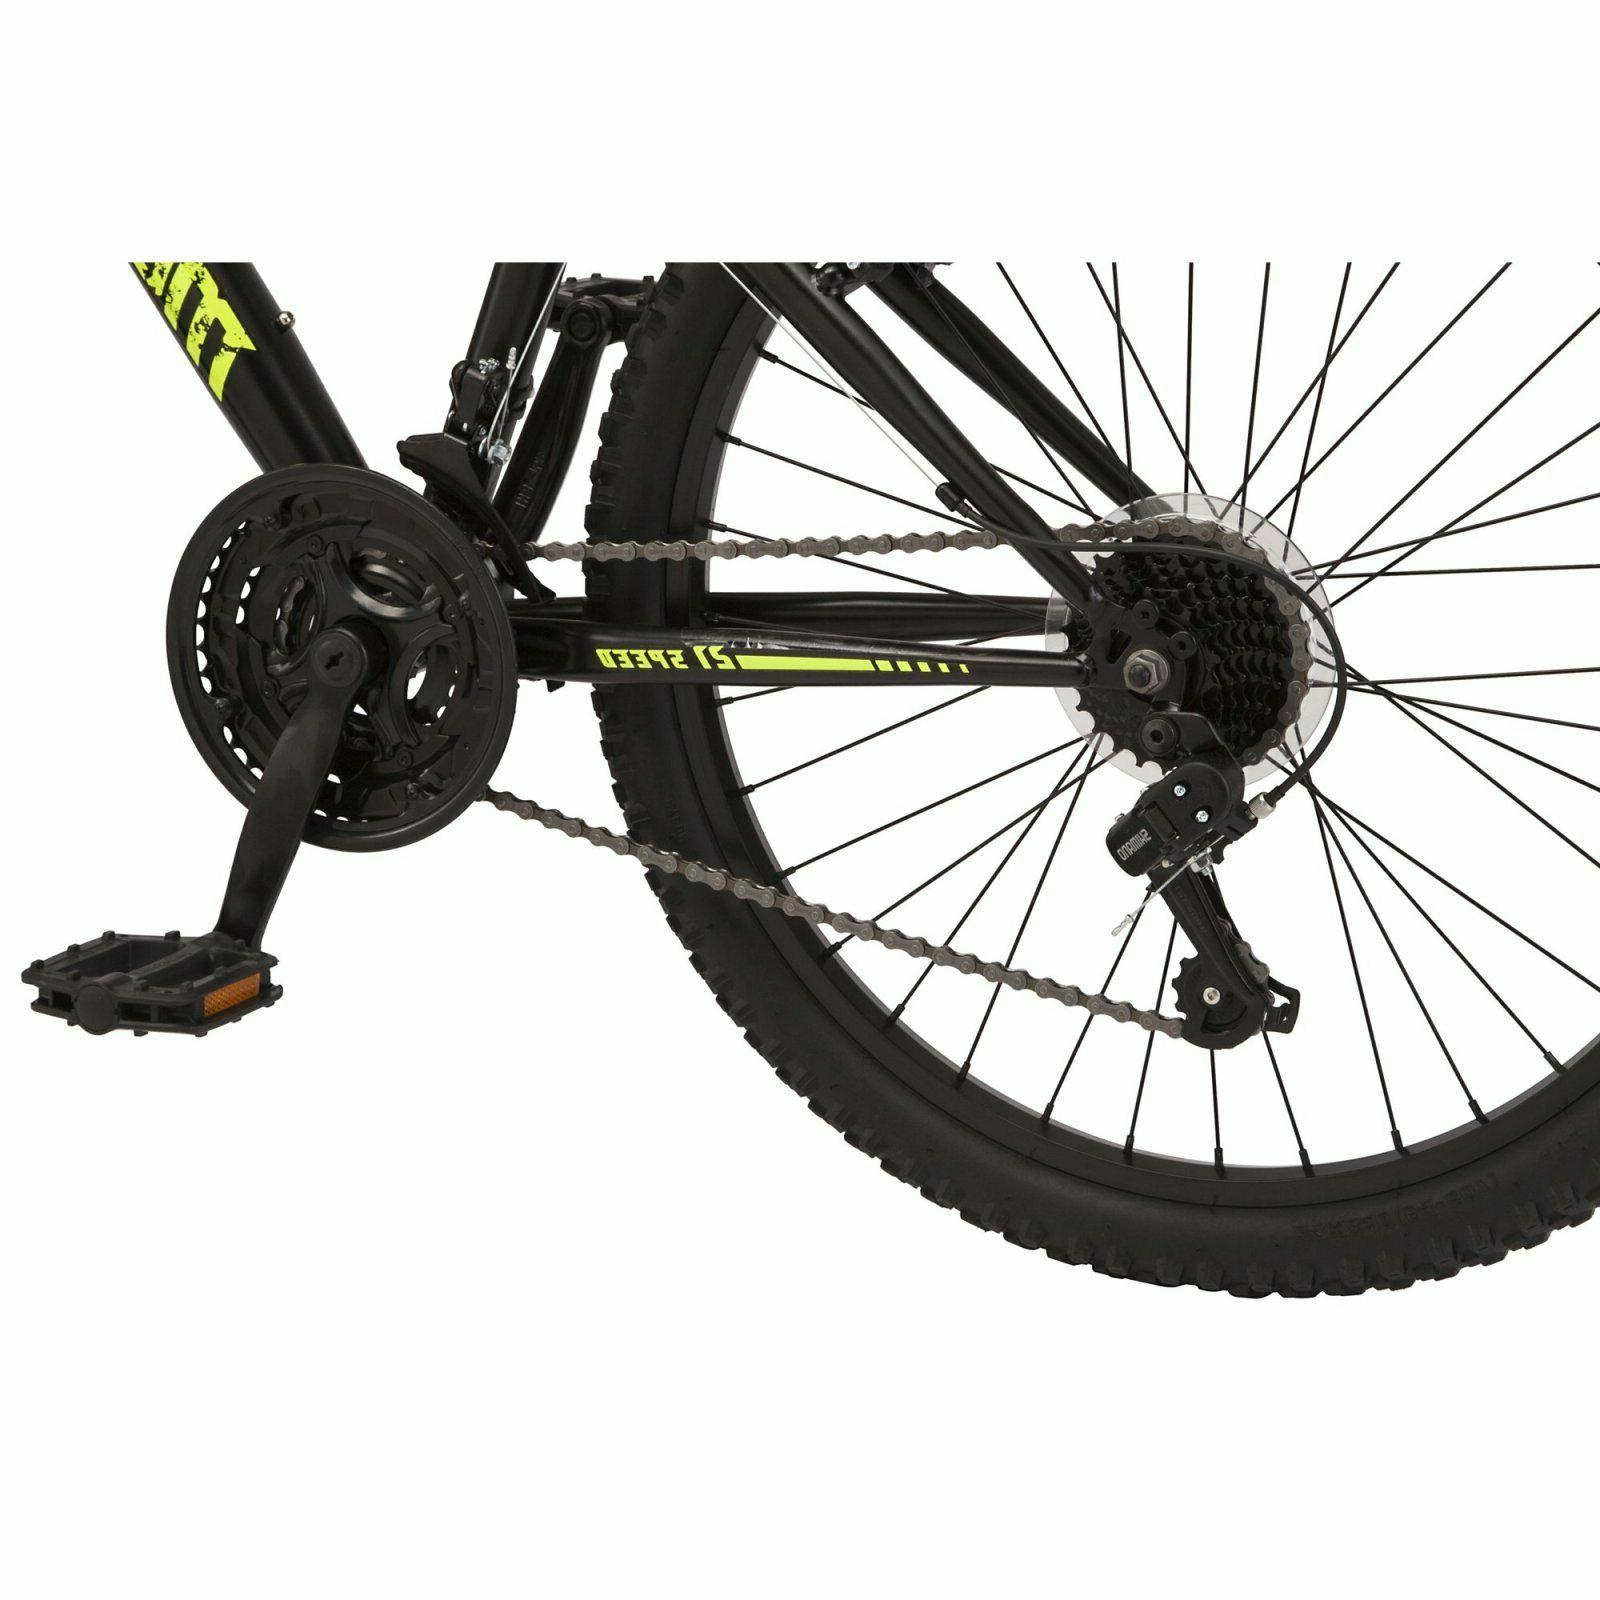 Mongoose Excursion Bike 24 Inch 21 and